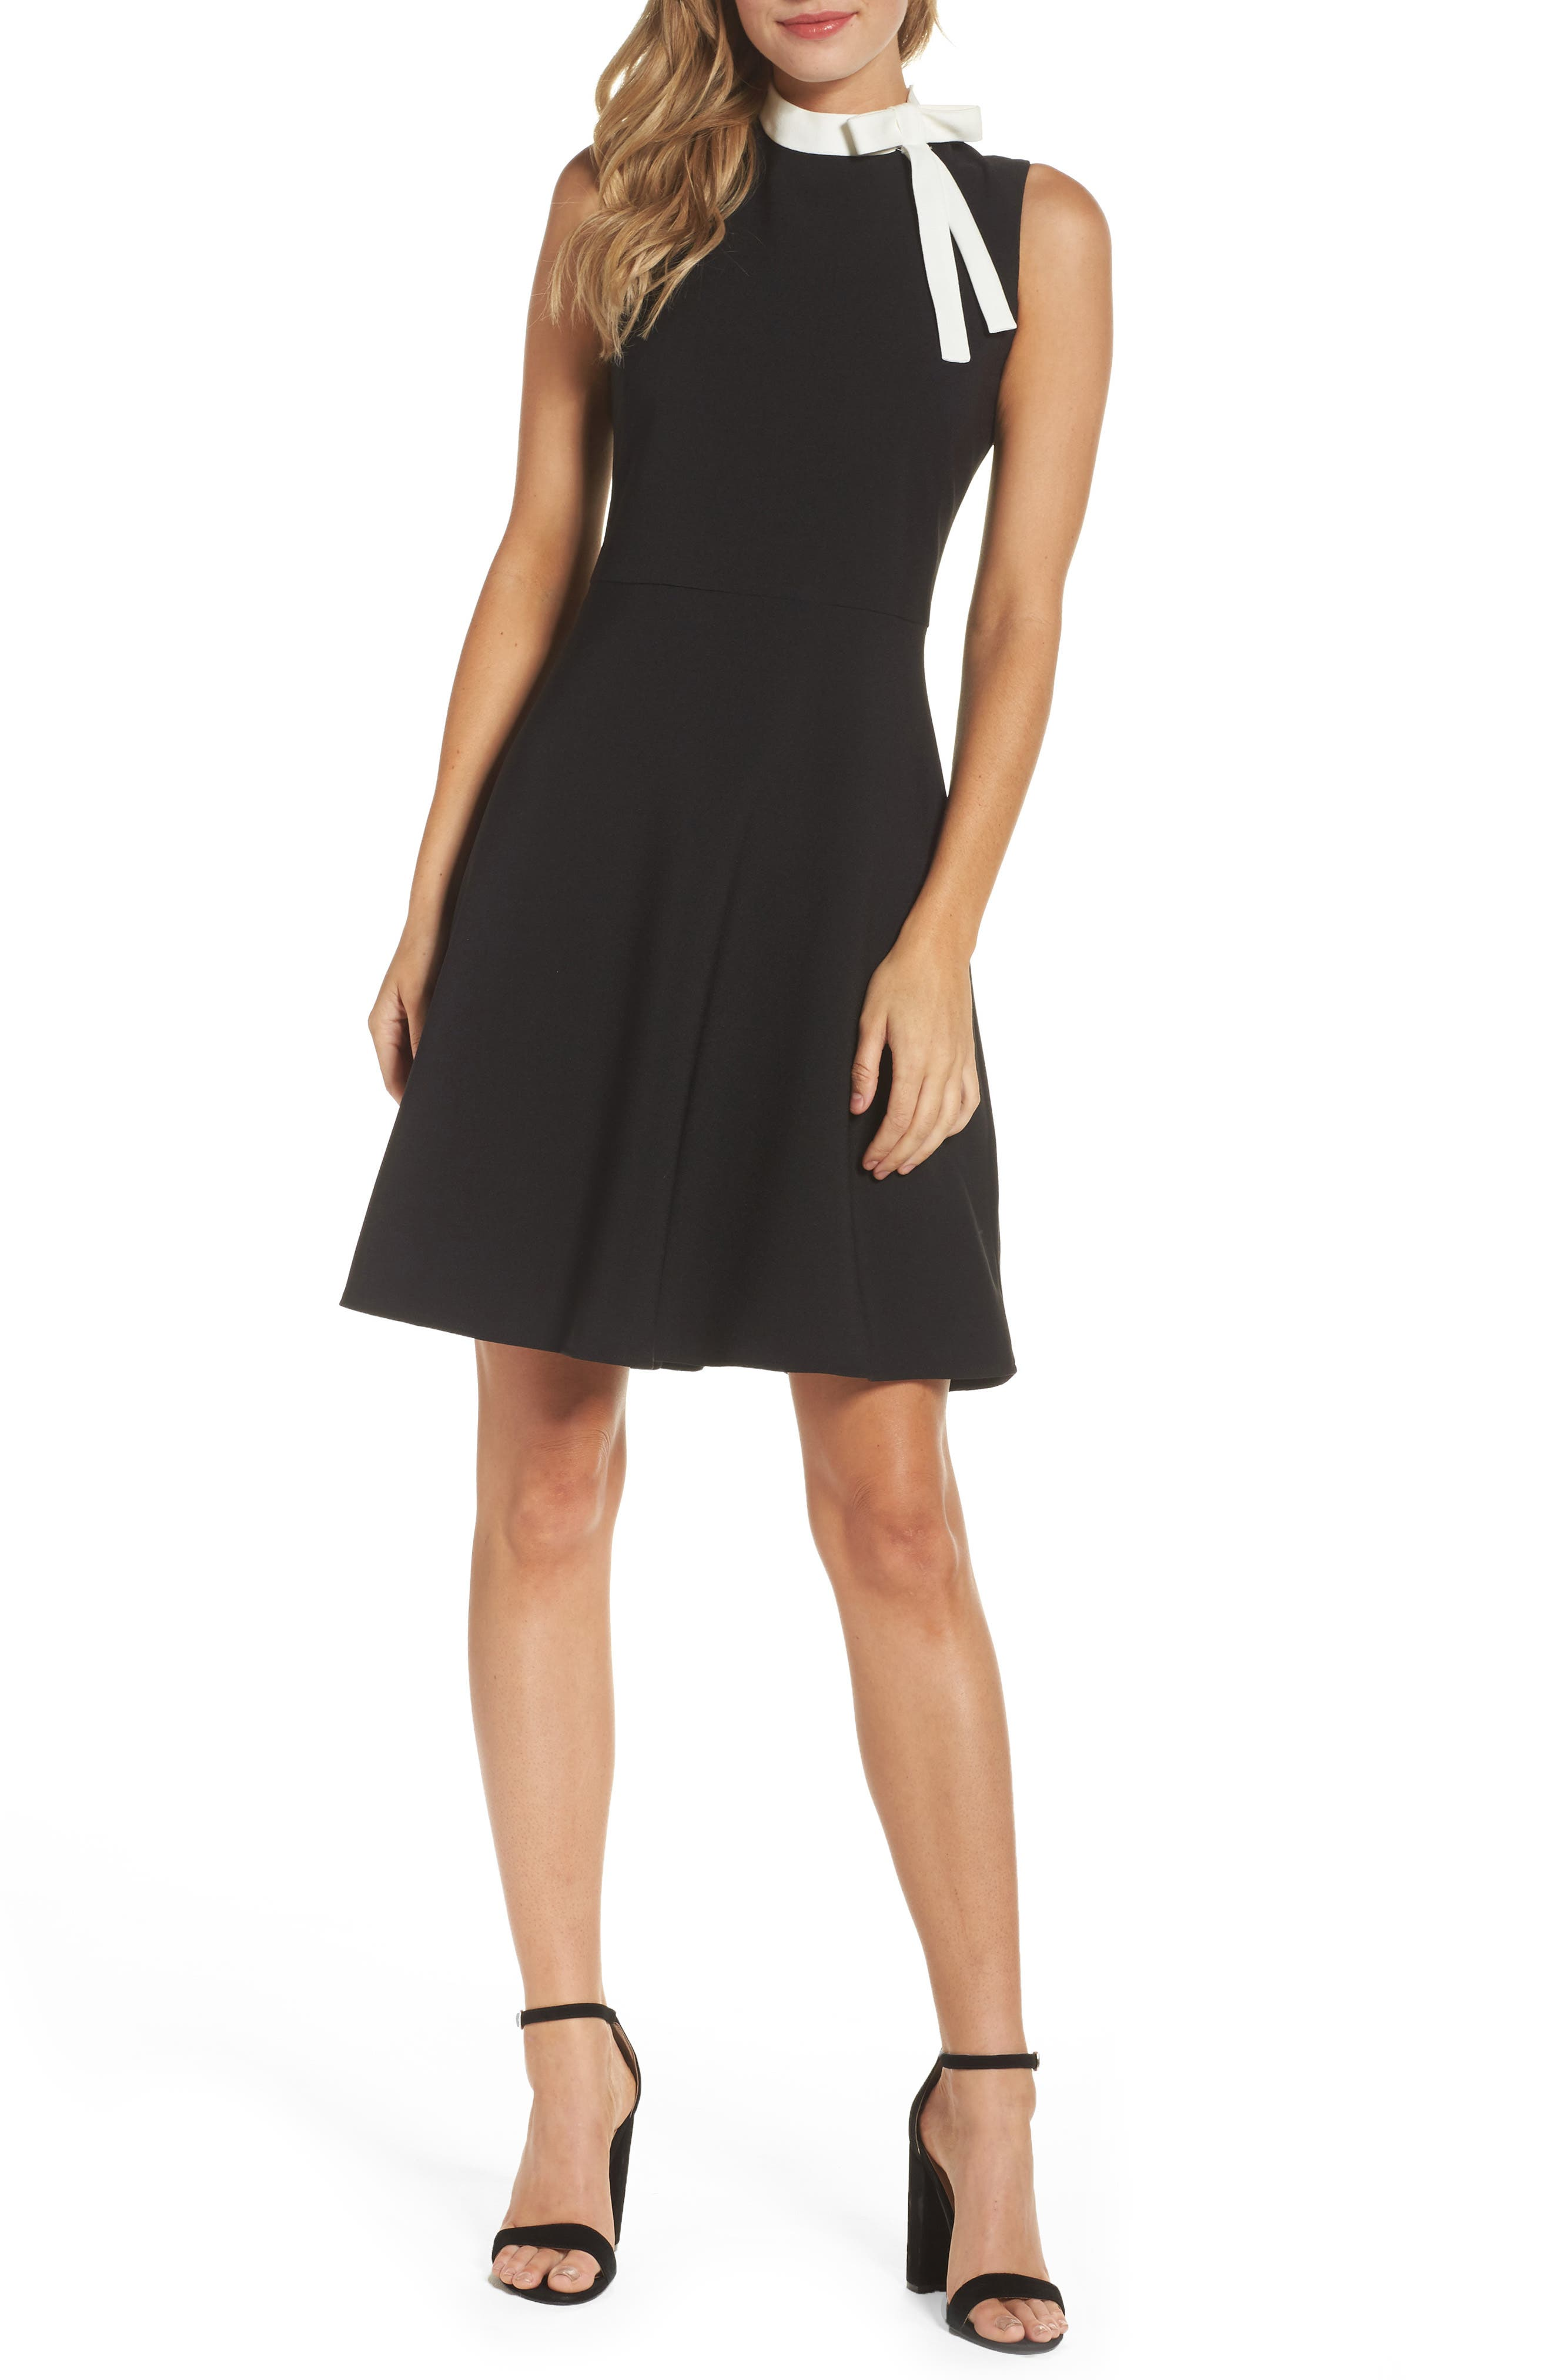 Alternate Image 1 Selected - Maggy London Bow Fit & Flare Dress